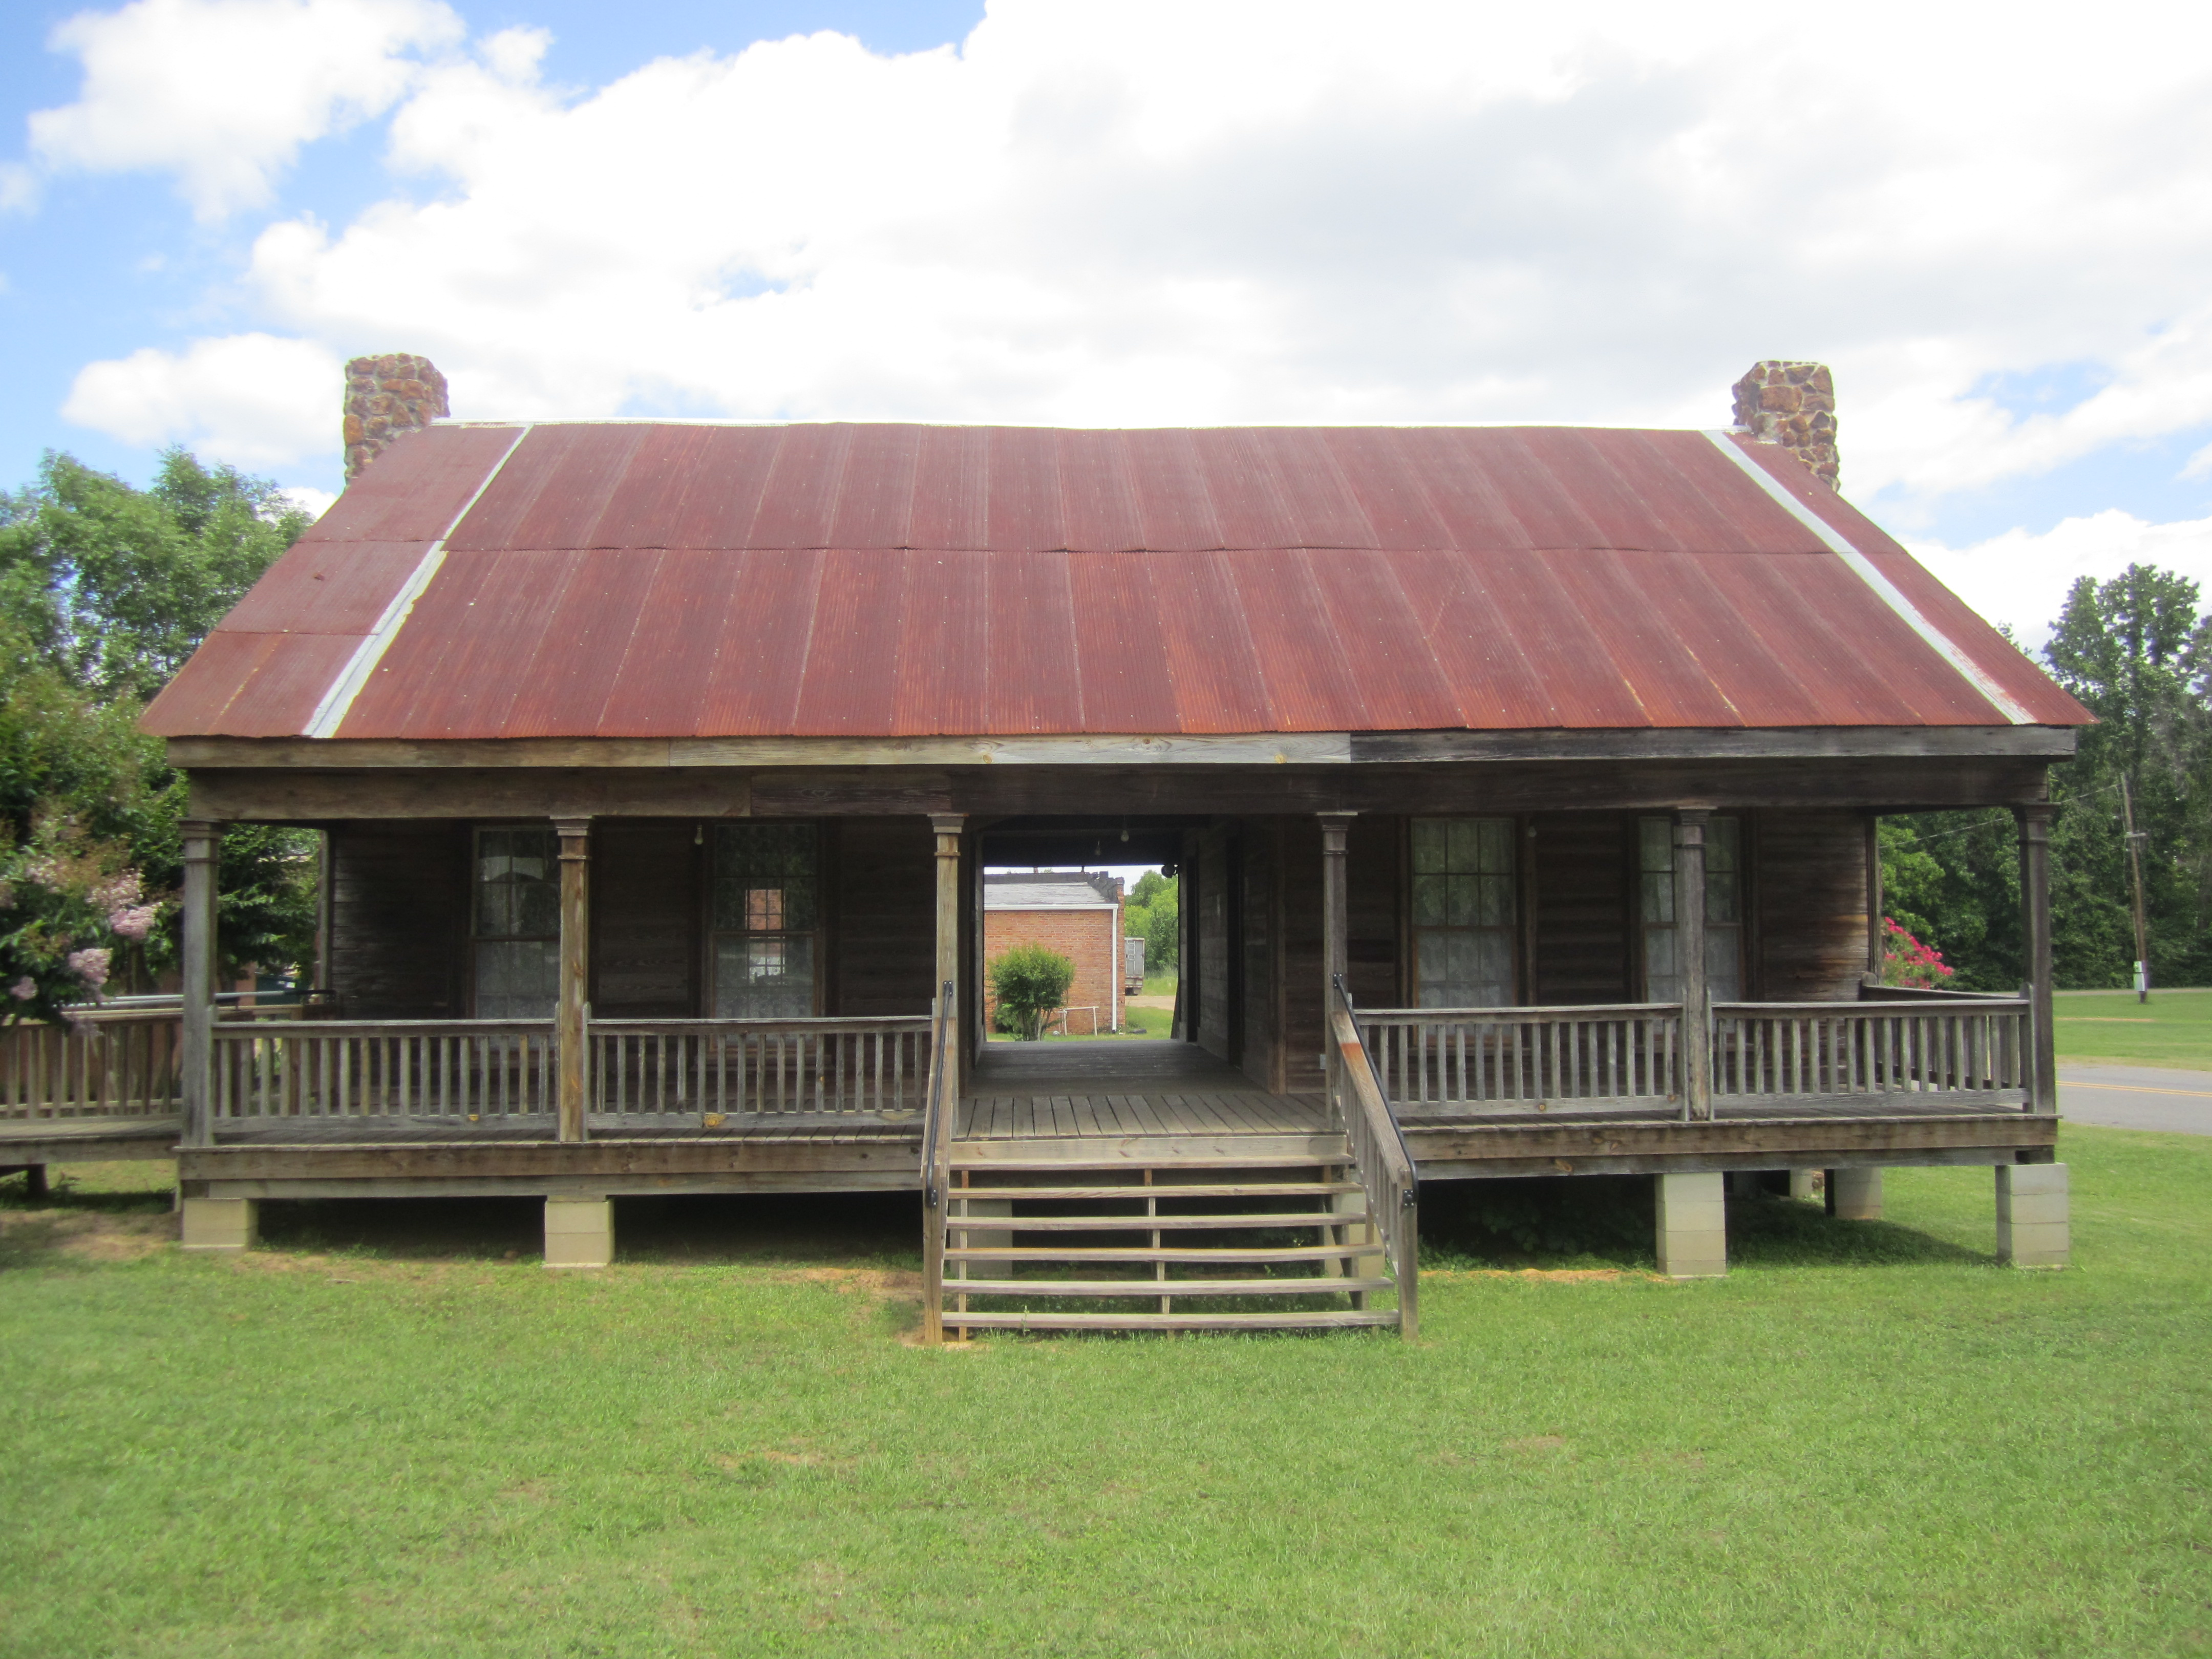 Picture of: File Dogtrot House Dubach La Img 2552 Jpg Wikimedia Commons